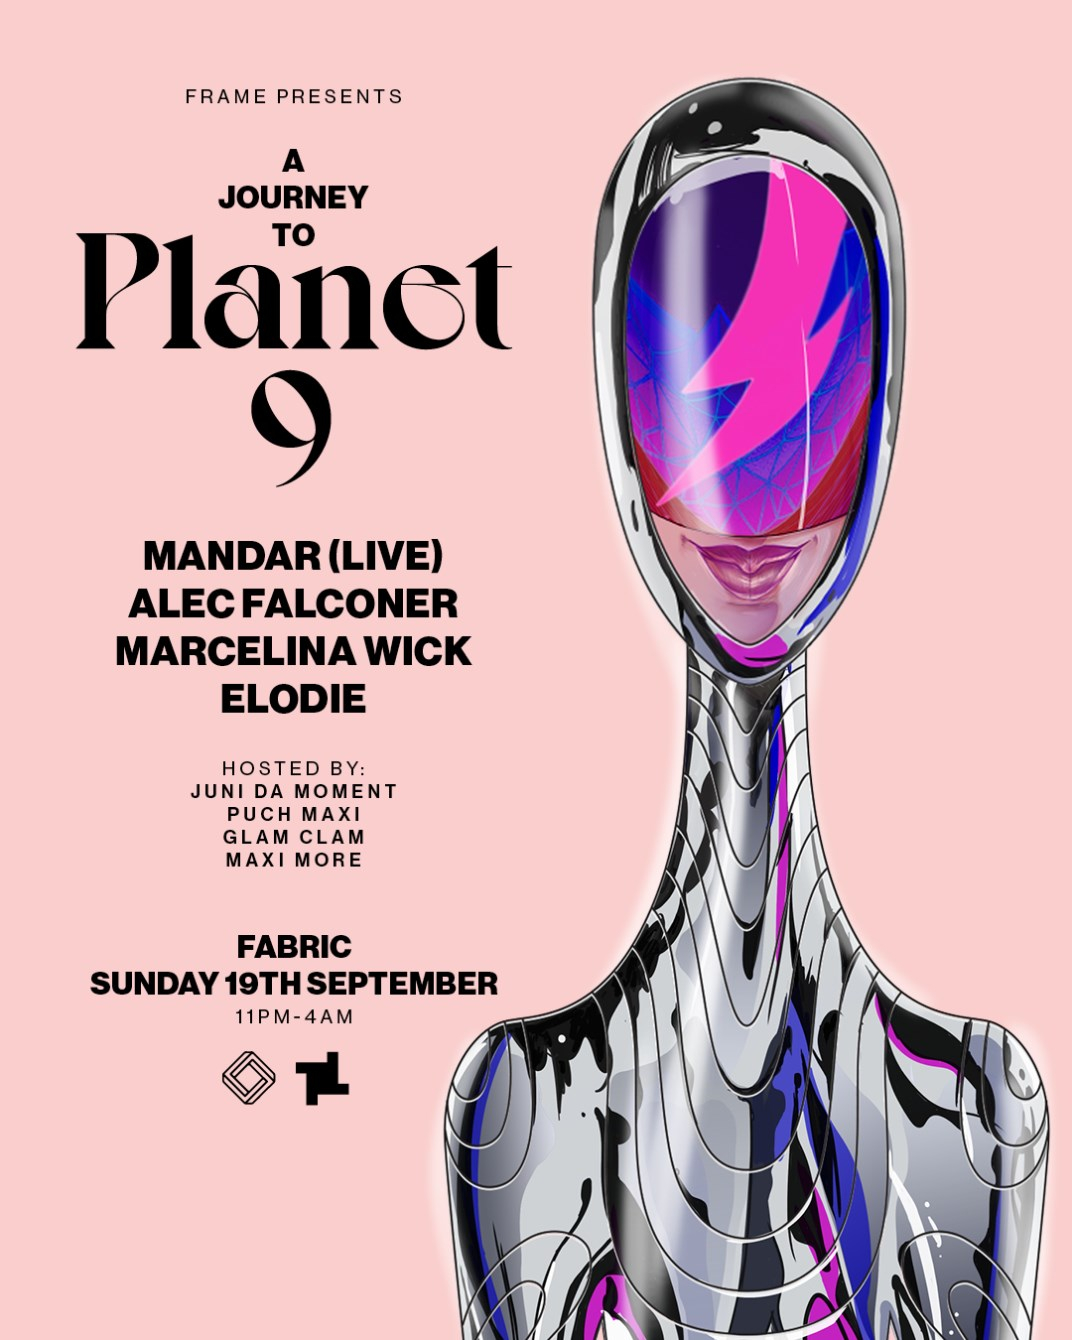 fabric Sundays: A Journey to Planet 9 with Mandar, Alec Falconer & More - Flyer front